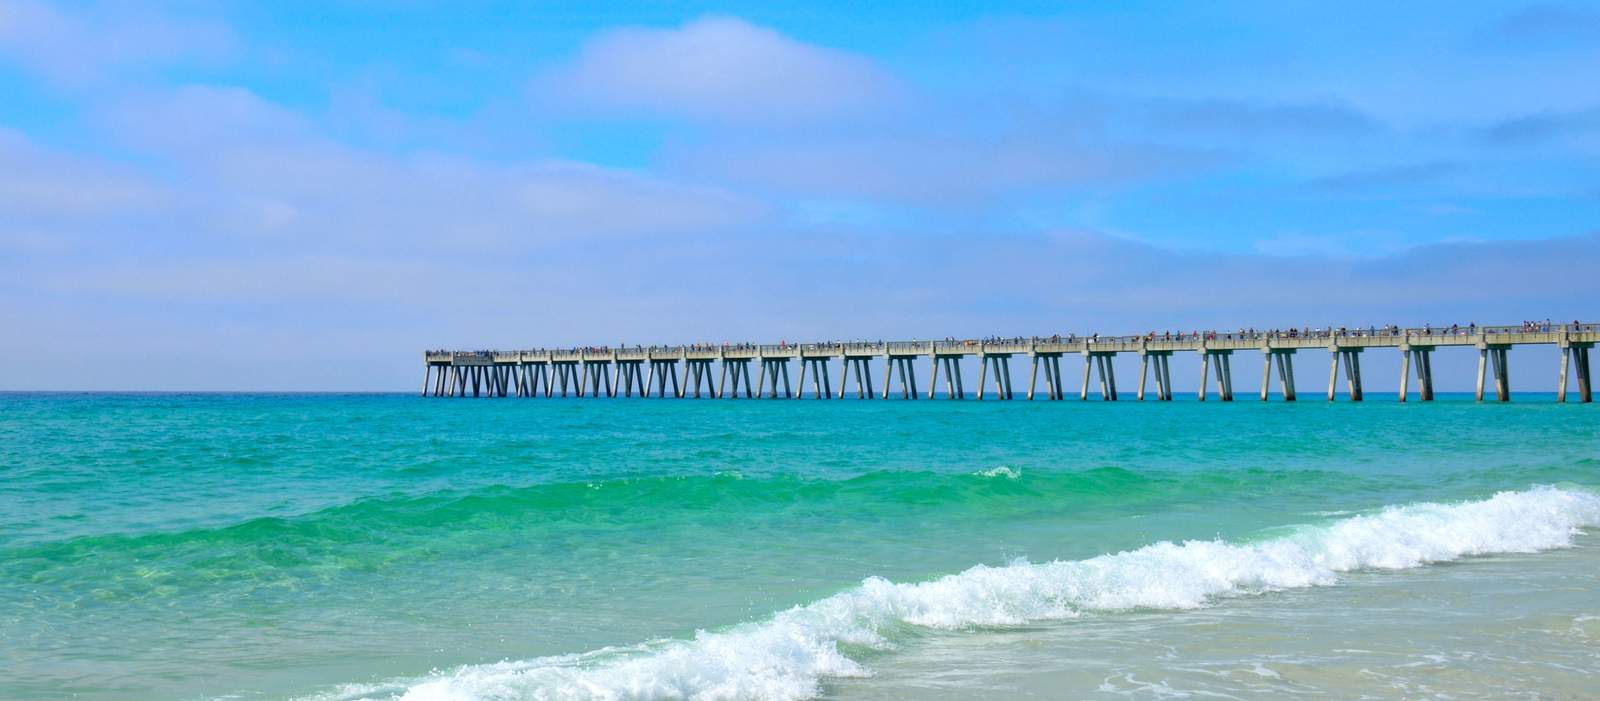 Pier extending out over the blue green ocean at Panama City